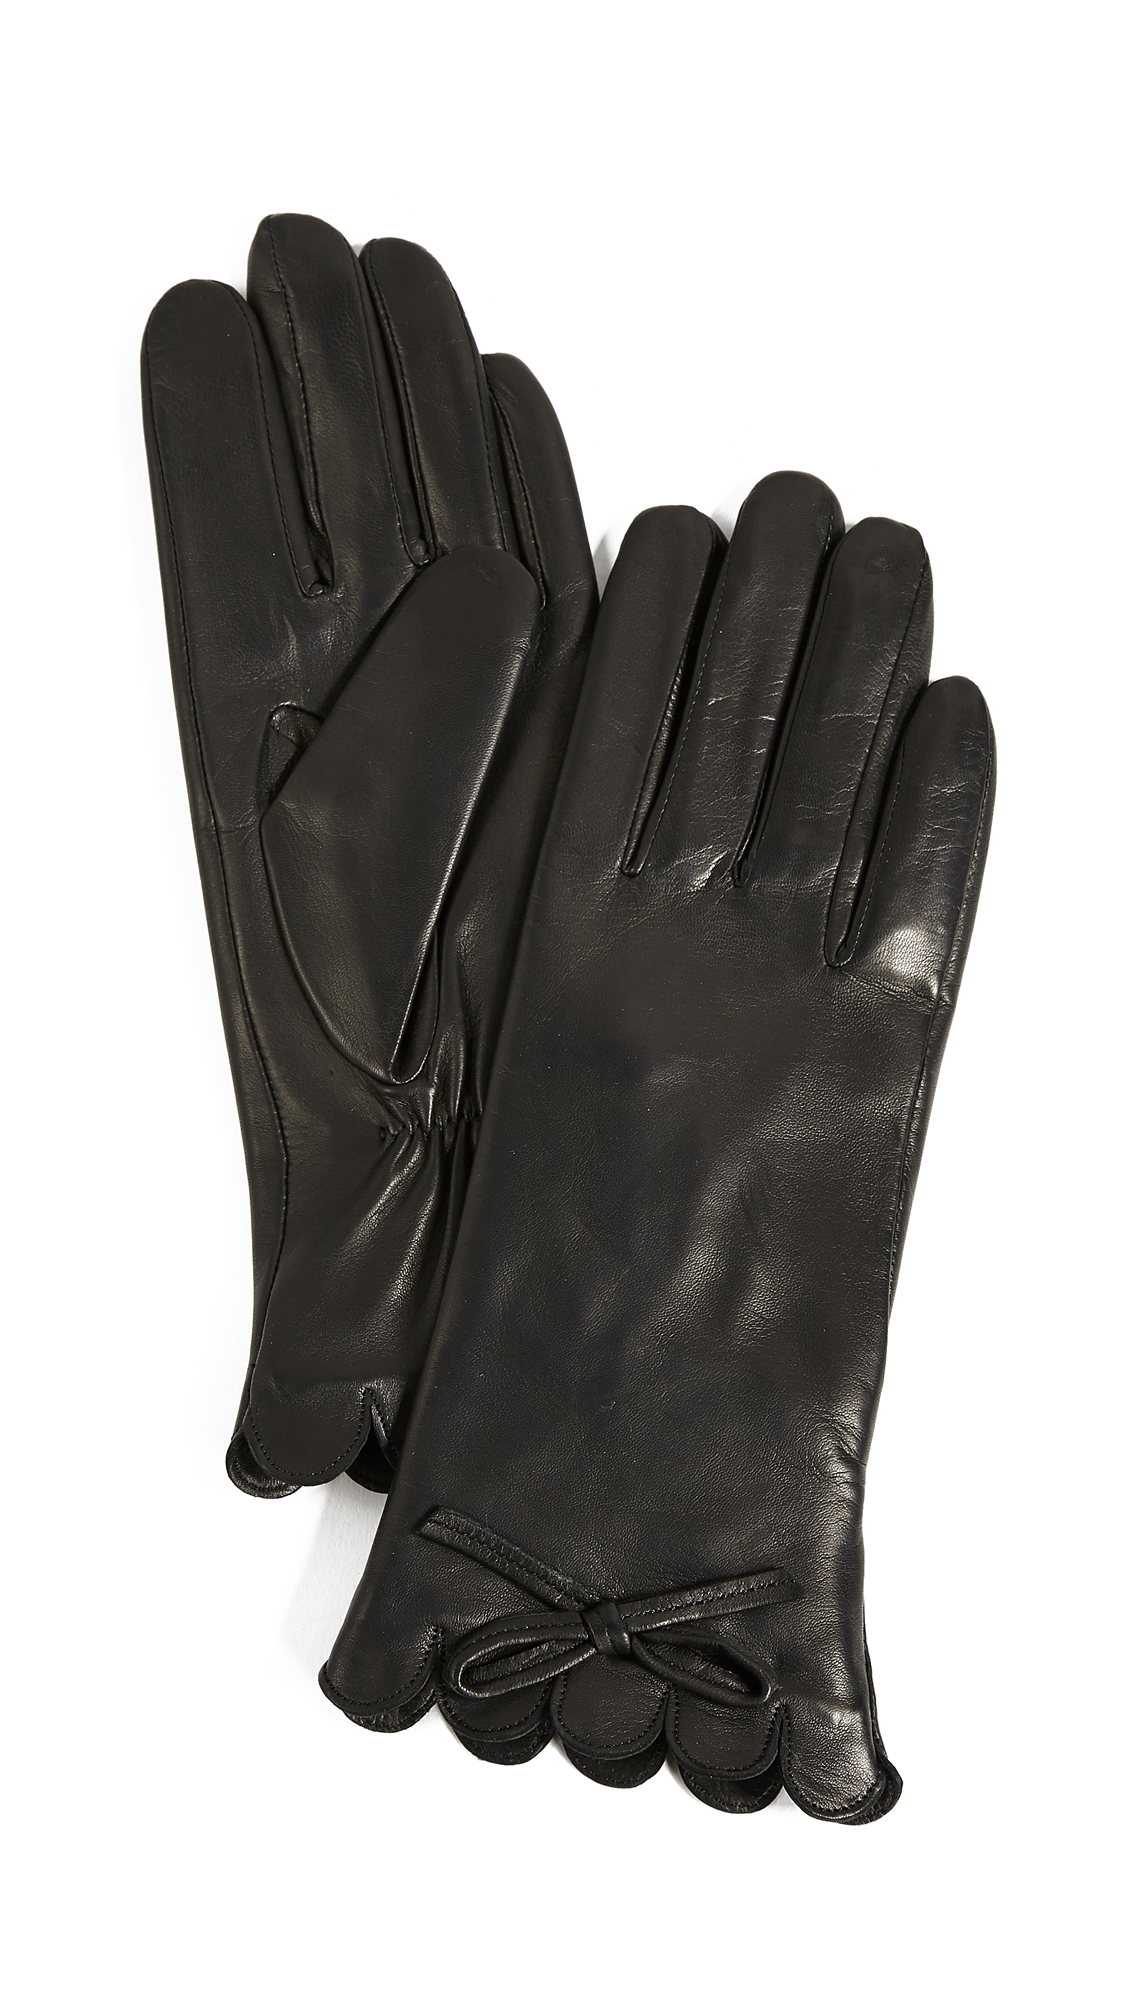 Kate Spade New York Scallop Leather Gloves - Black